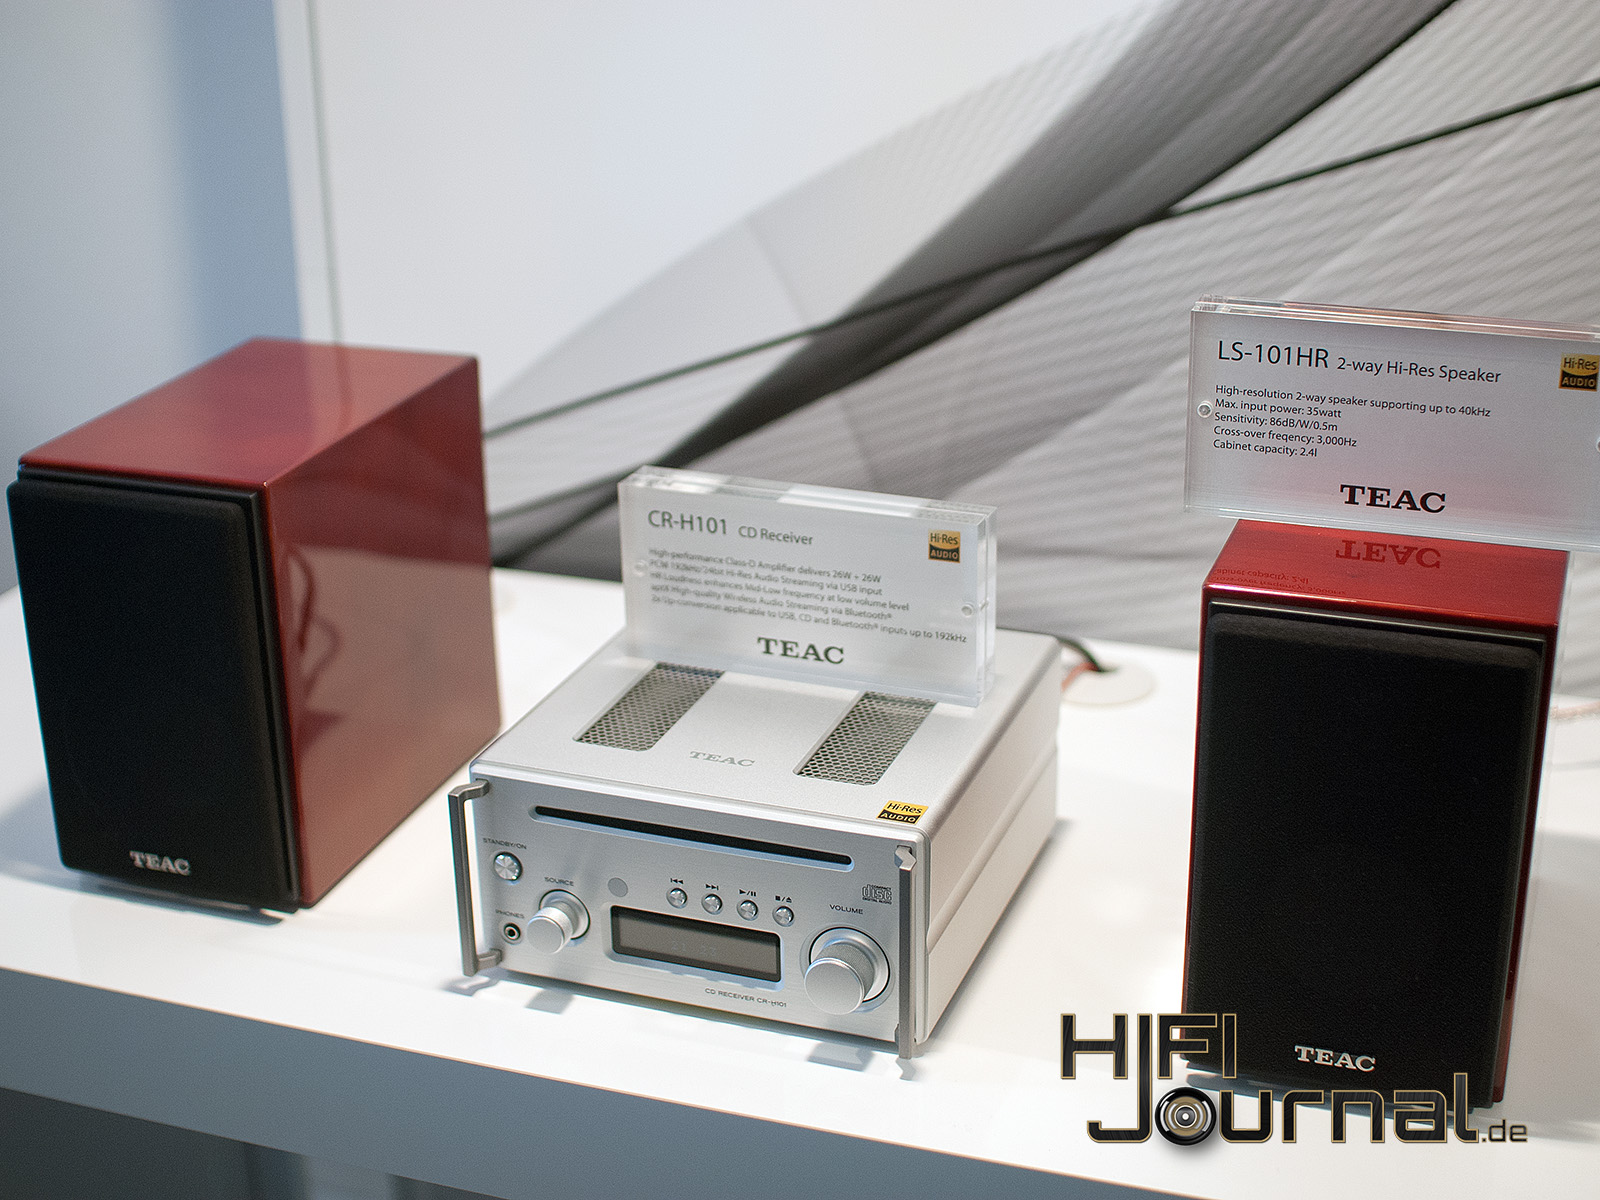 High End 2016: TEAC Mini-HiFi-System CR-H101 - HiFi-Journal